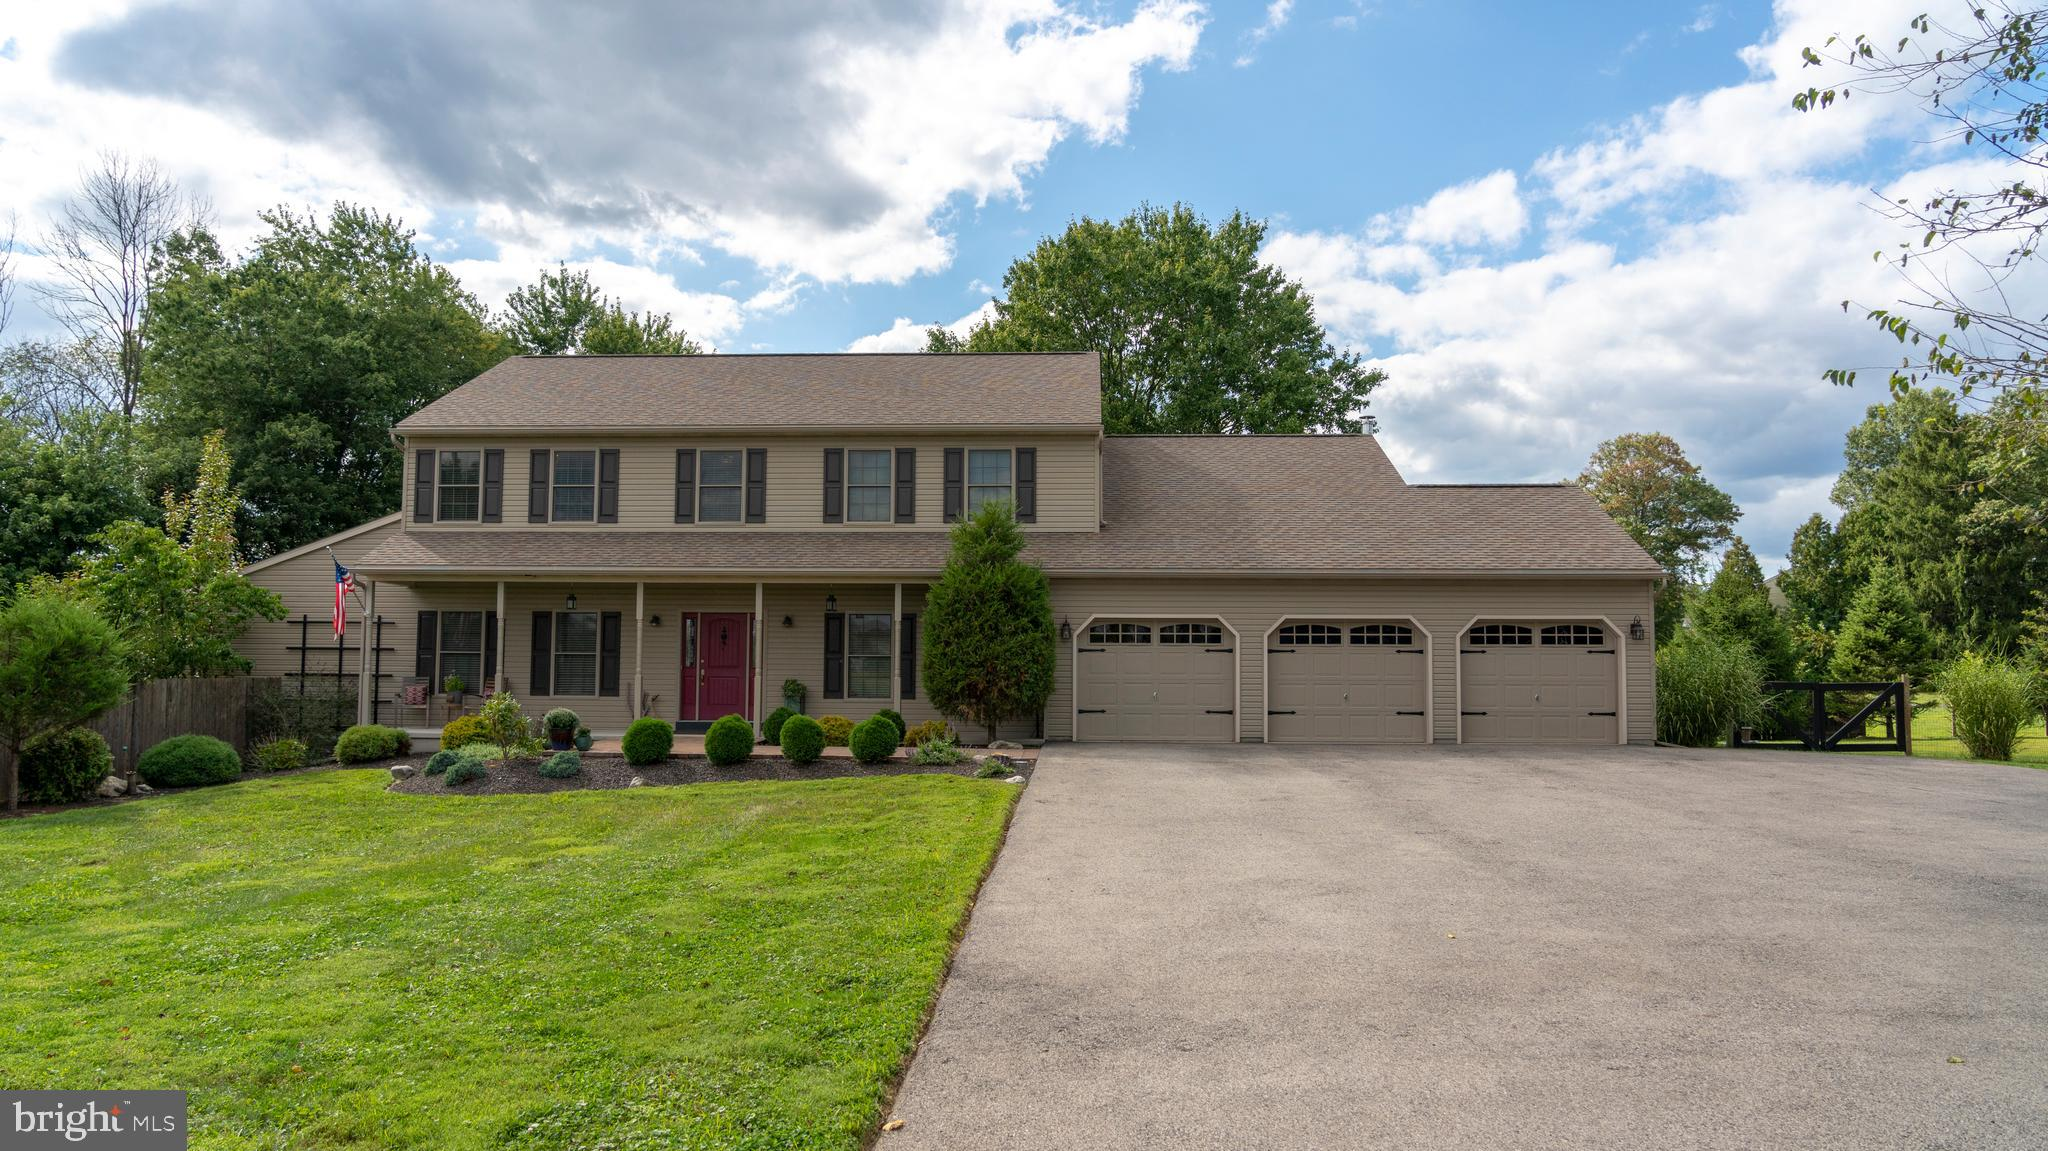 3852 DARK HOLLOW ROAD, FURLONG, PA 18925